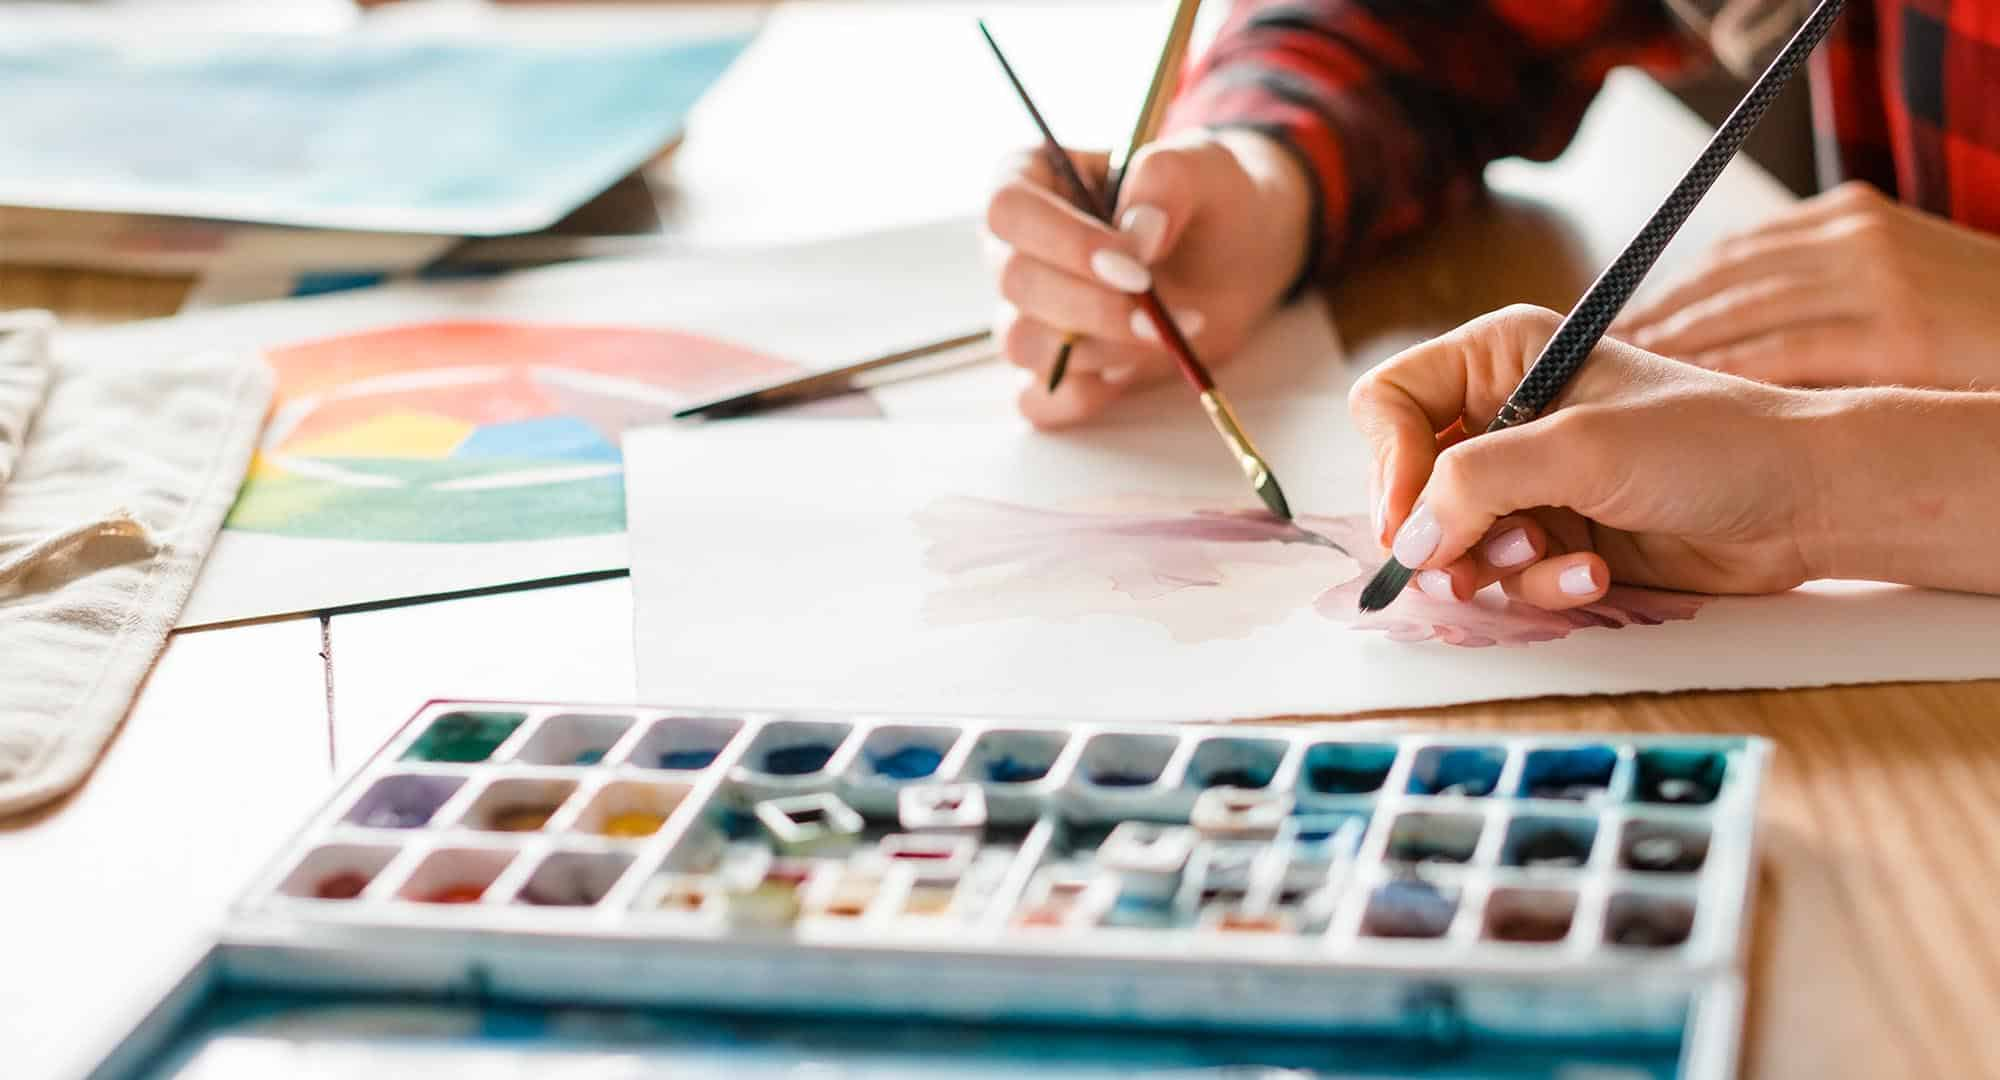 The role of Art Therapy on health and well-being